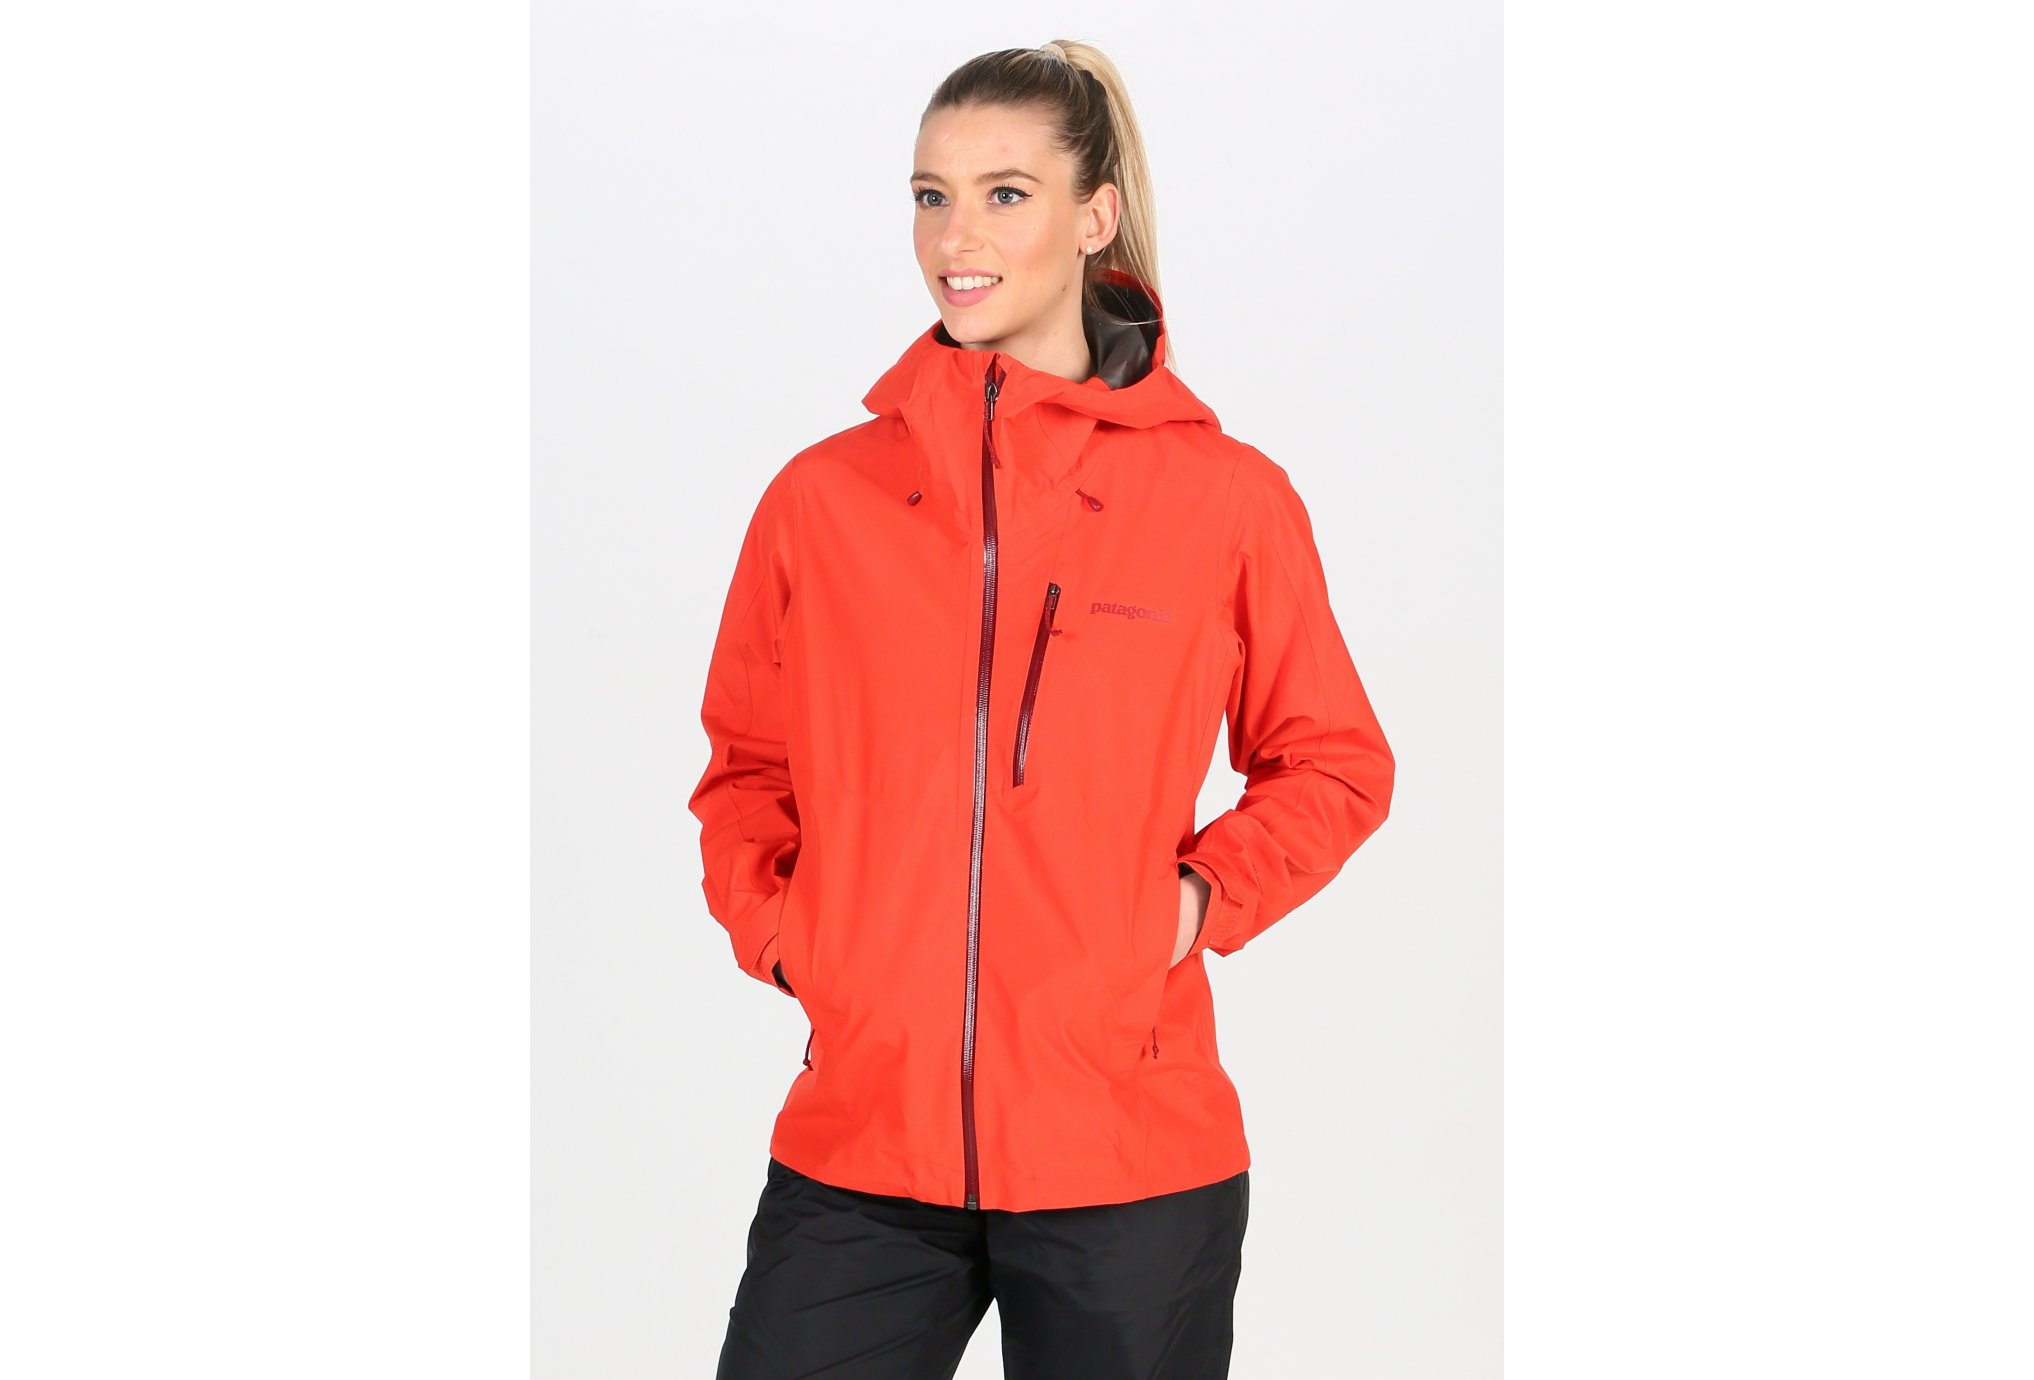 Patagonia Calcite Gore-Tex W vêtement running femme